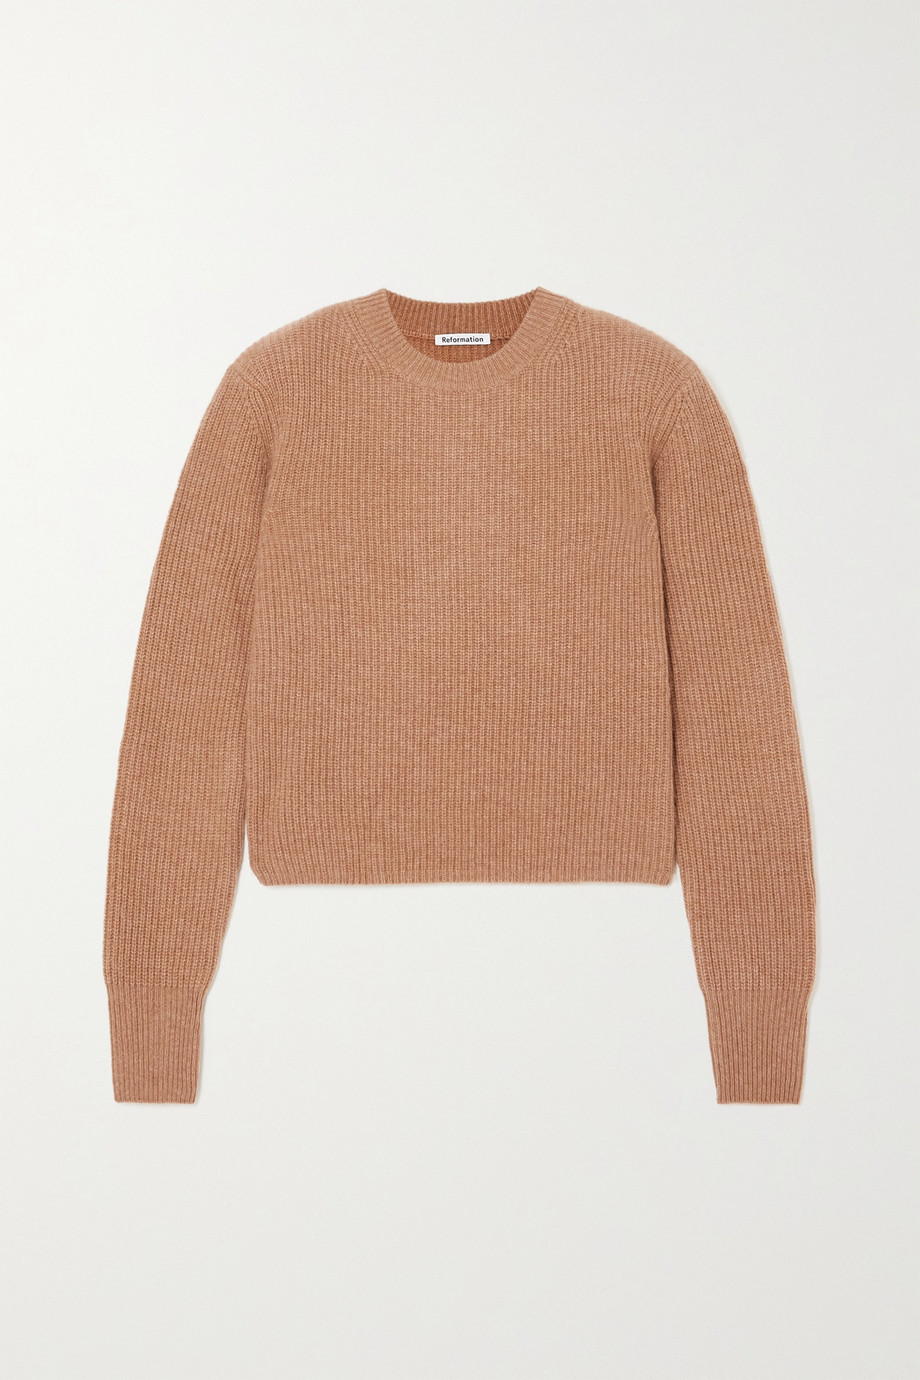 Reformation Cesina ribbed cashmere sweater